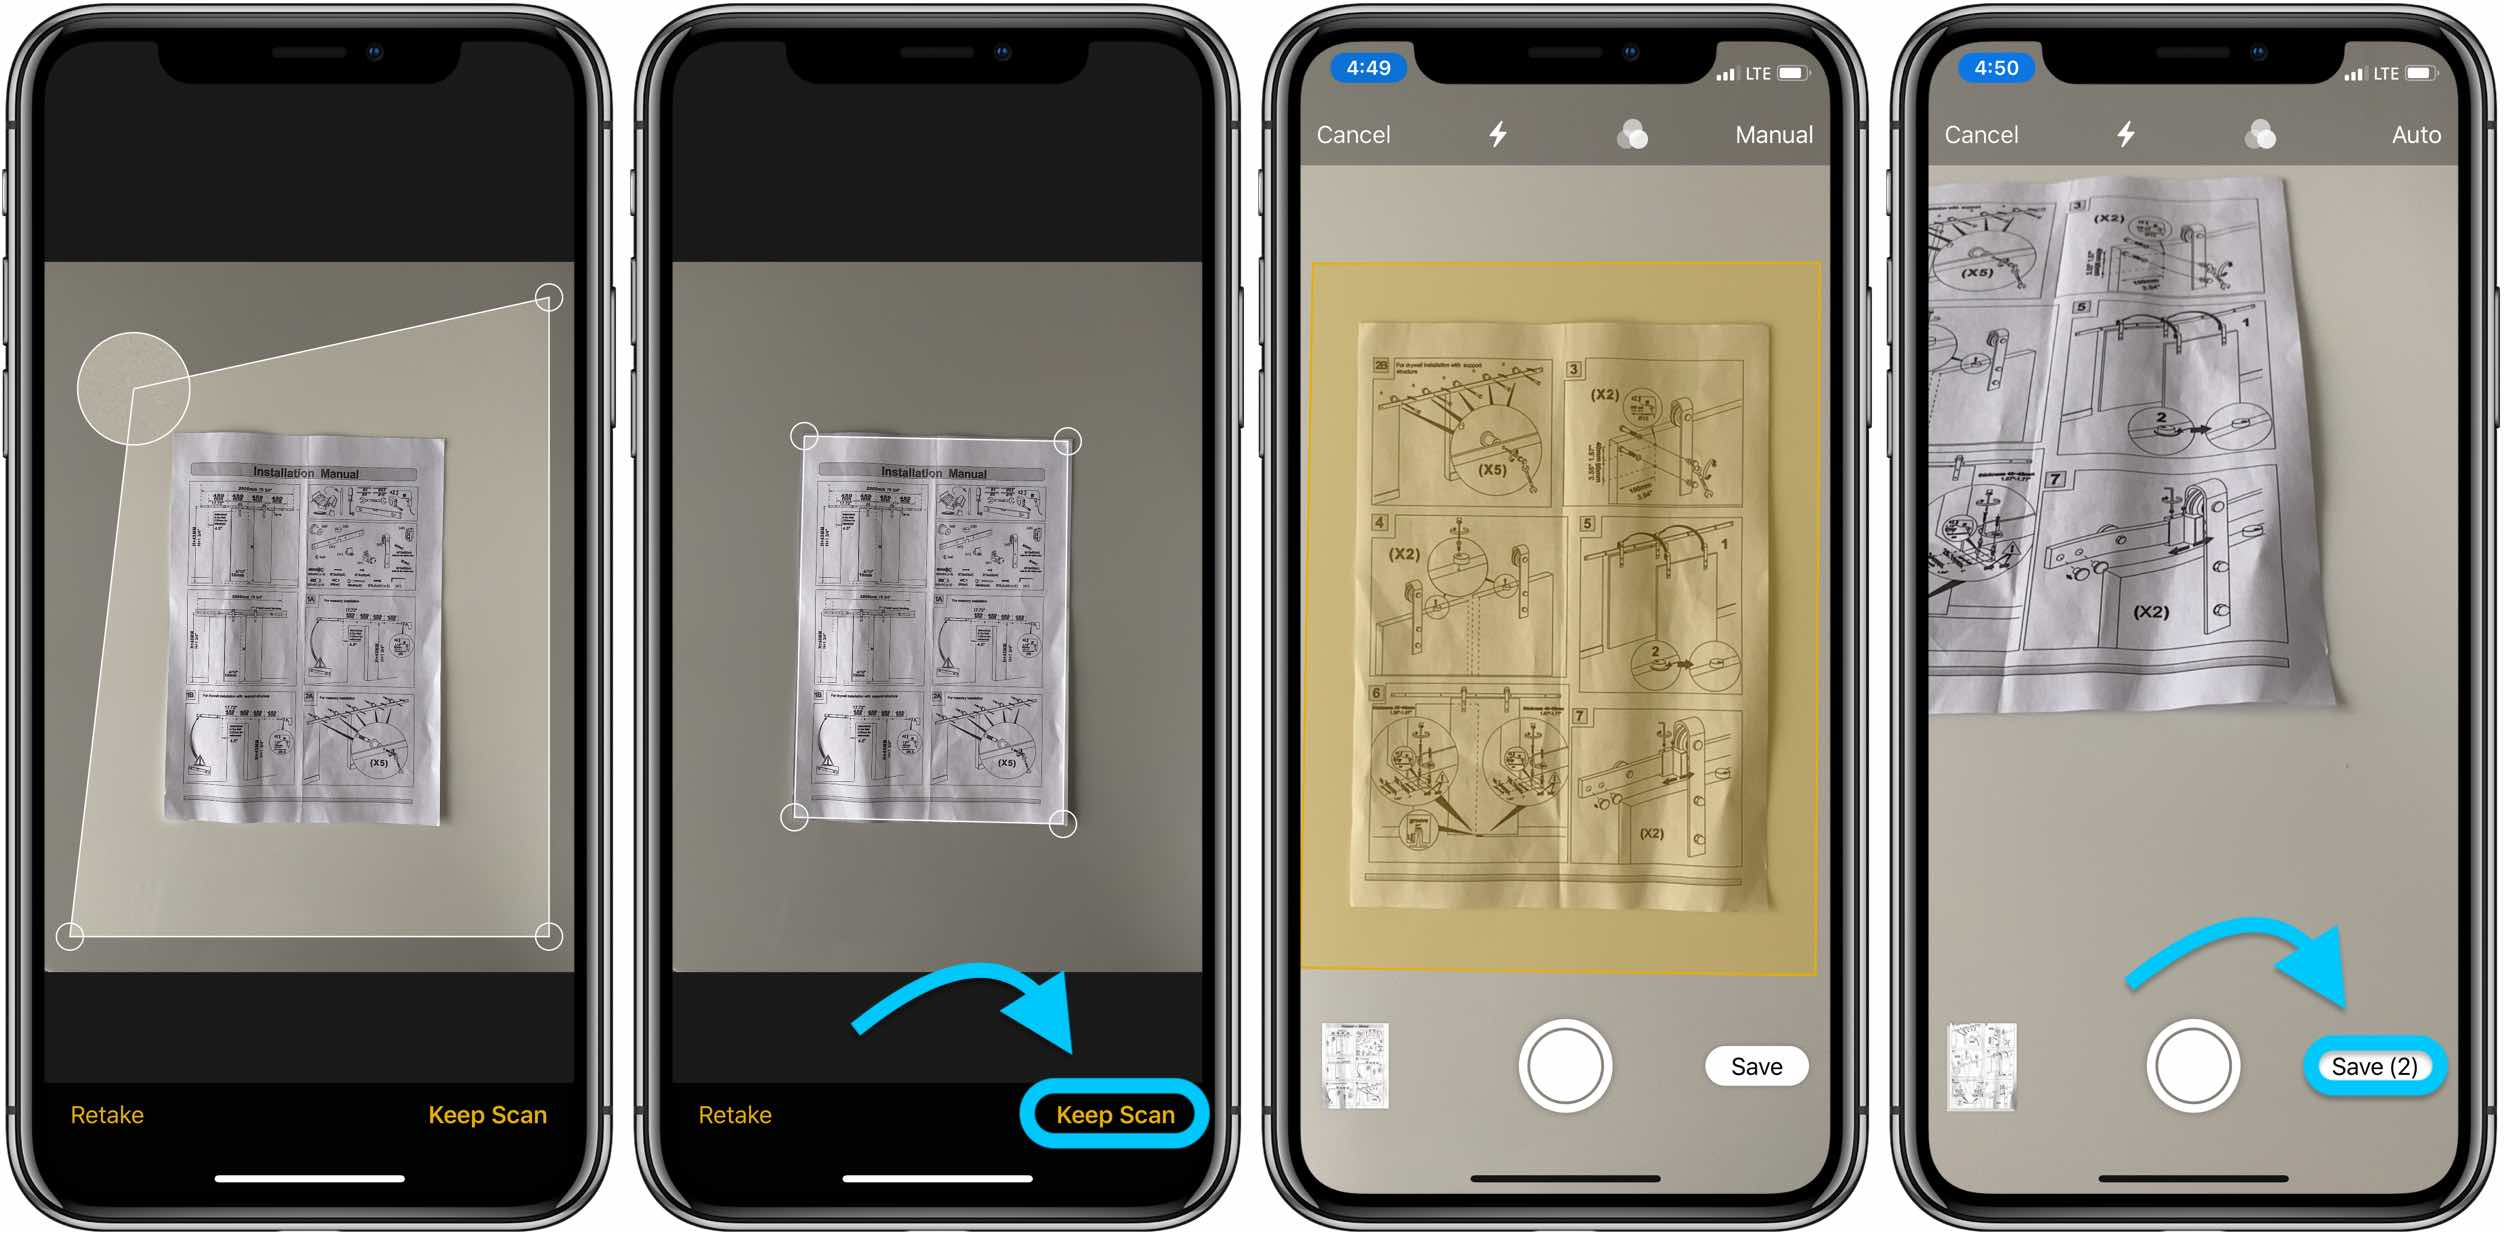 How to scan with iPhone iOS notes app walkthrough 2